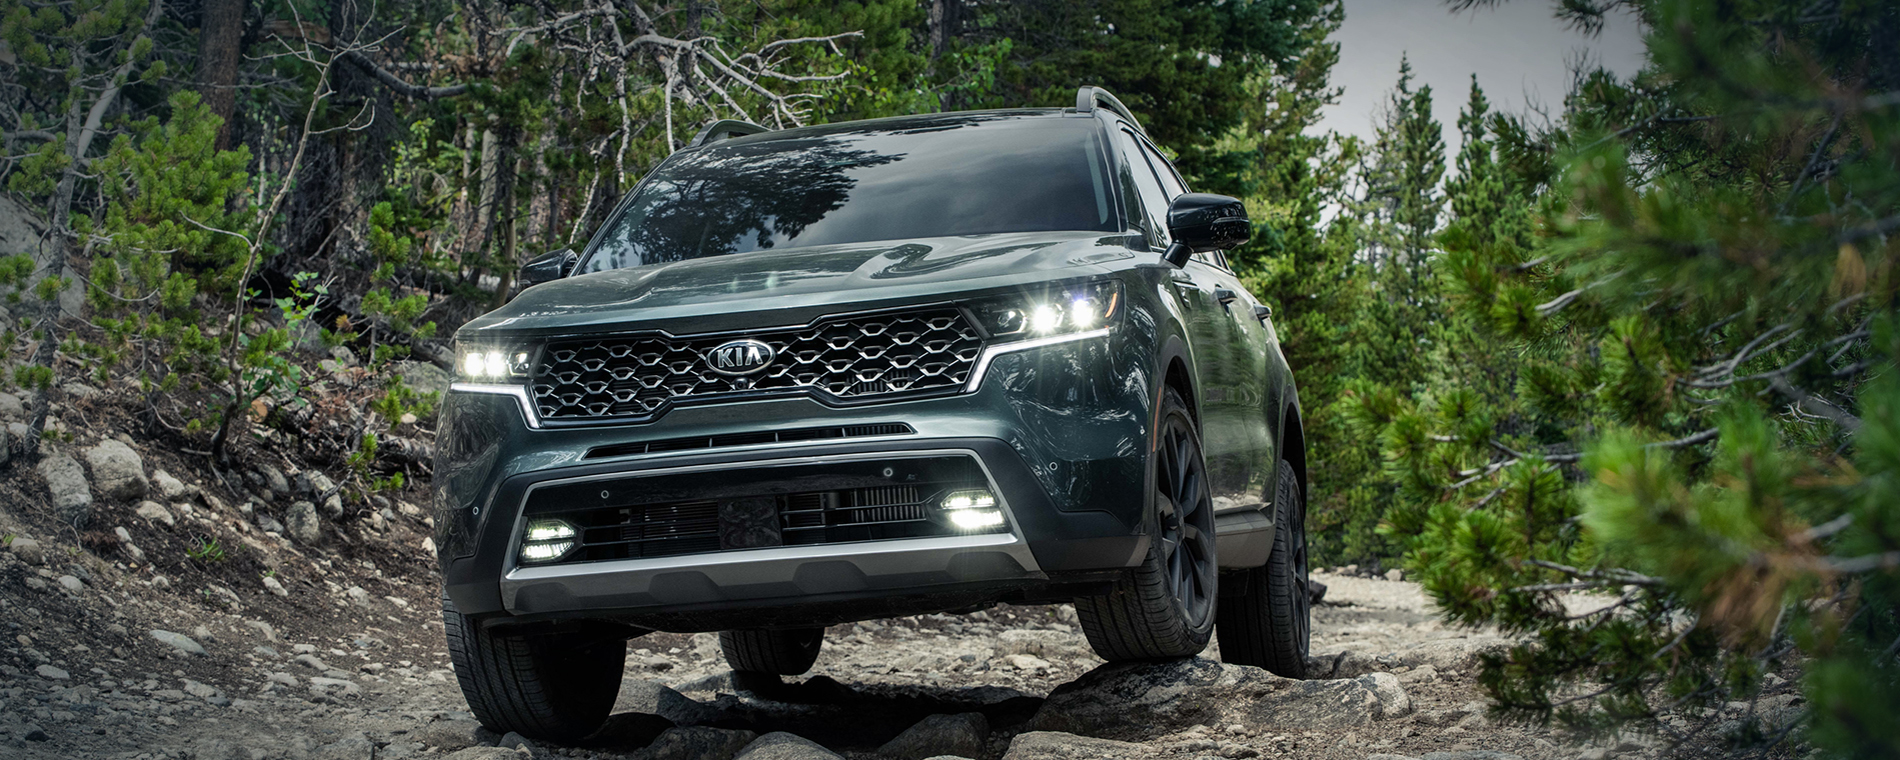 2019 Kia Sorento Interior: Cable Dahmer Kia Of